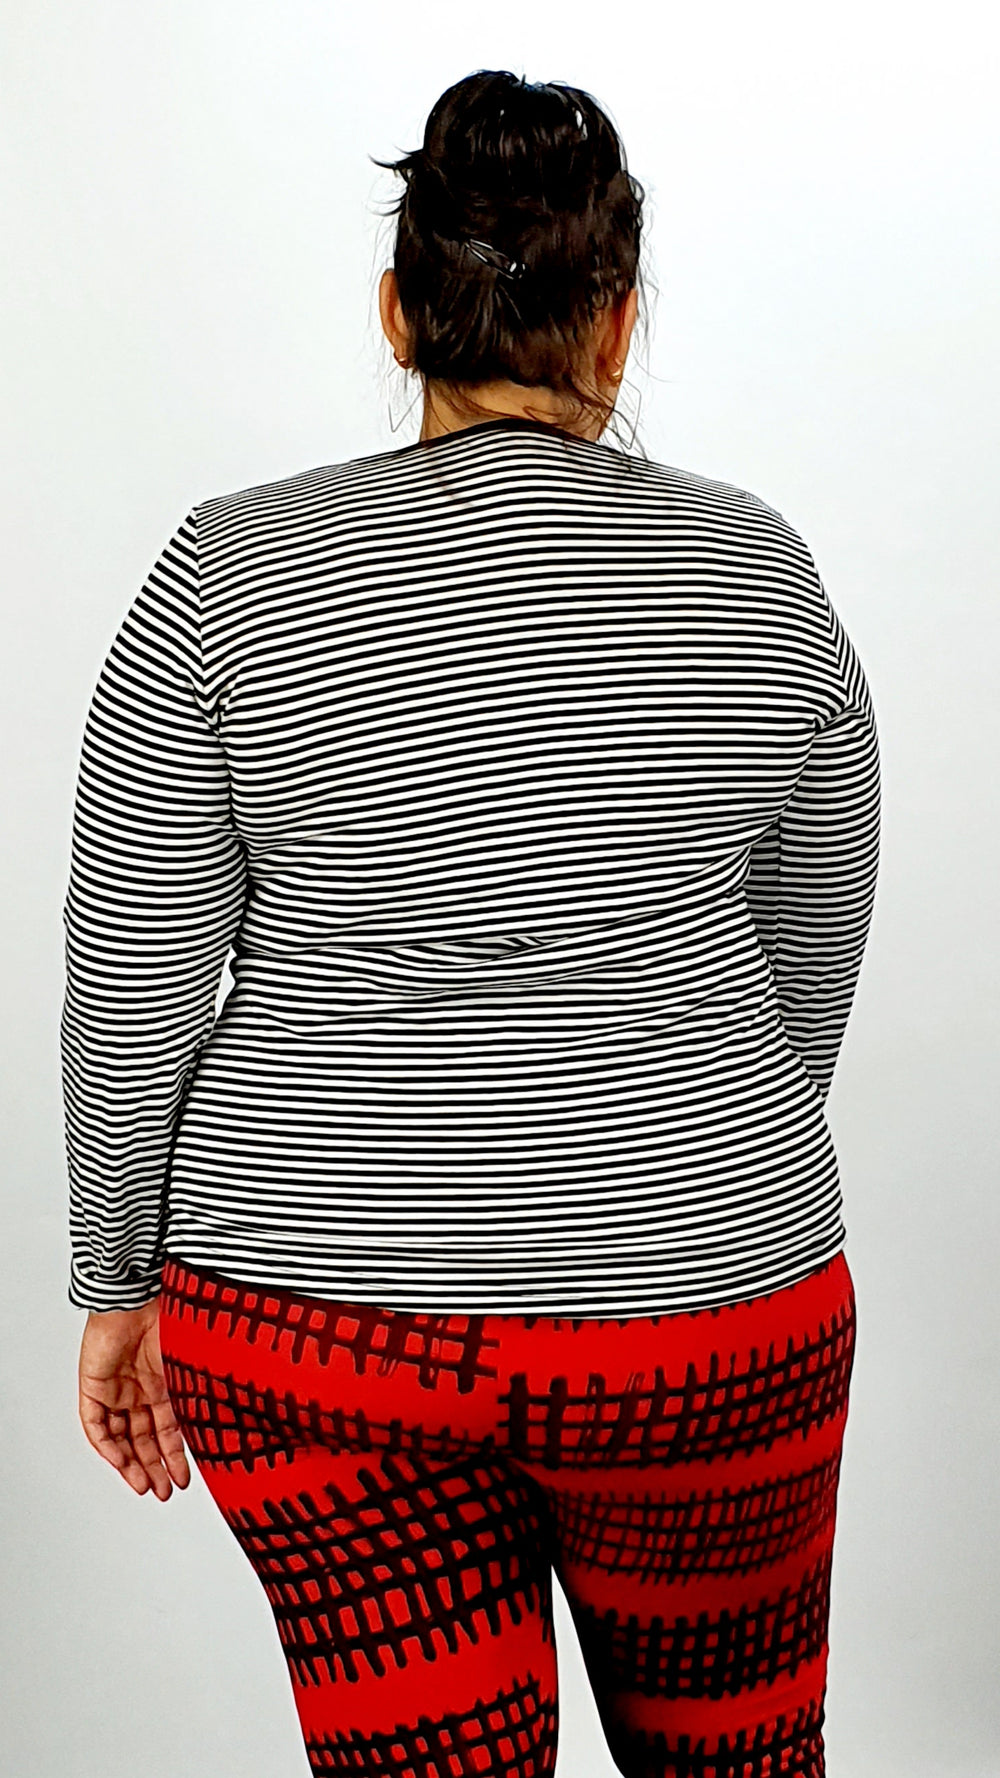 Black & Cream Strips Round Neck Soft Wool 100% Long Sleeve Tee Shirt